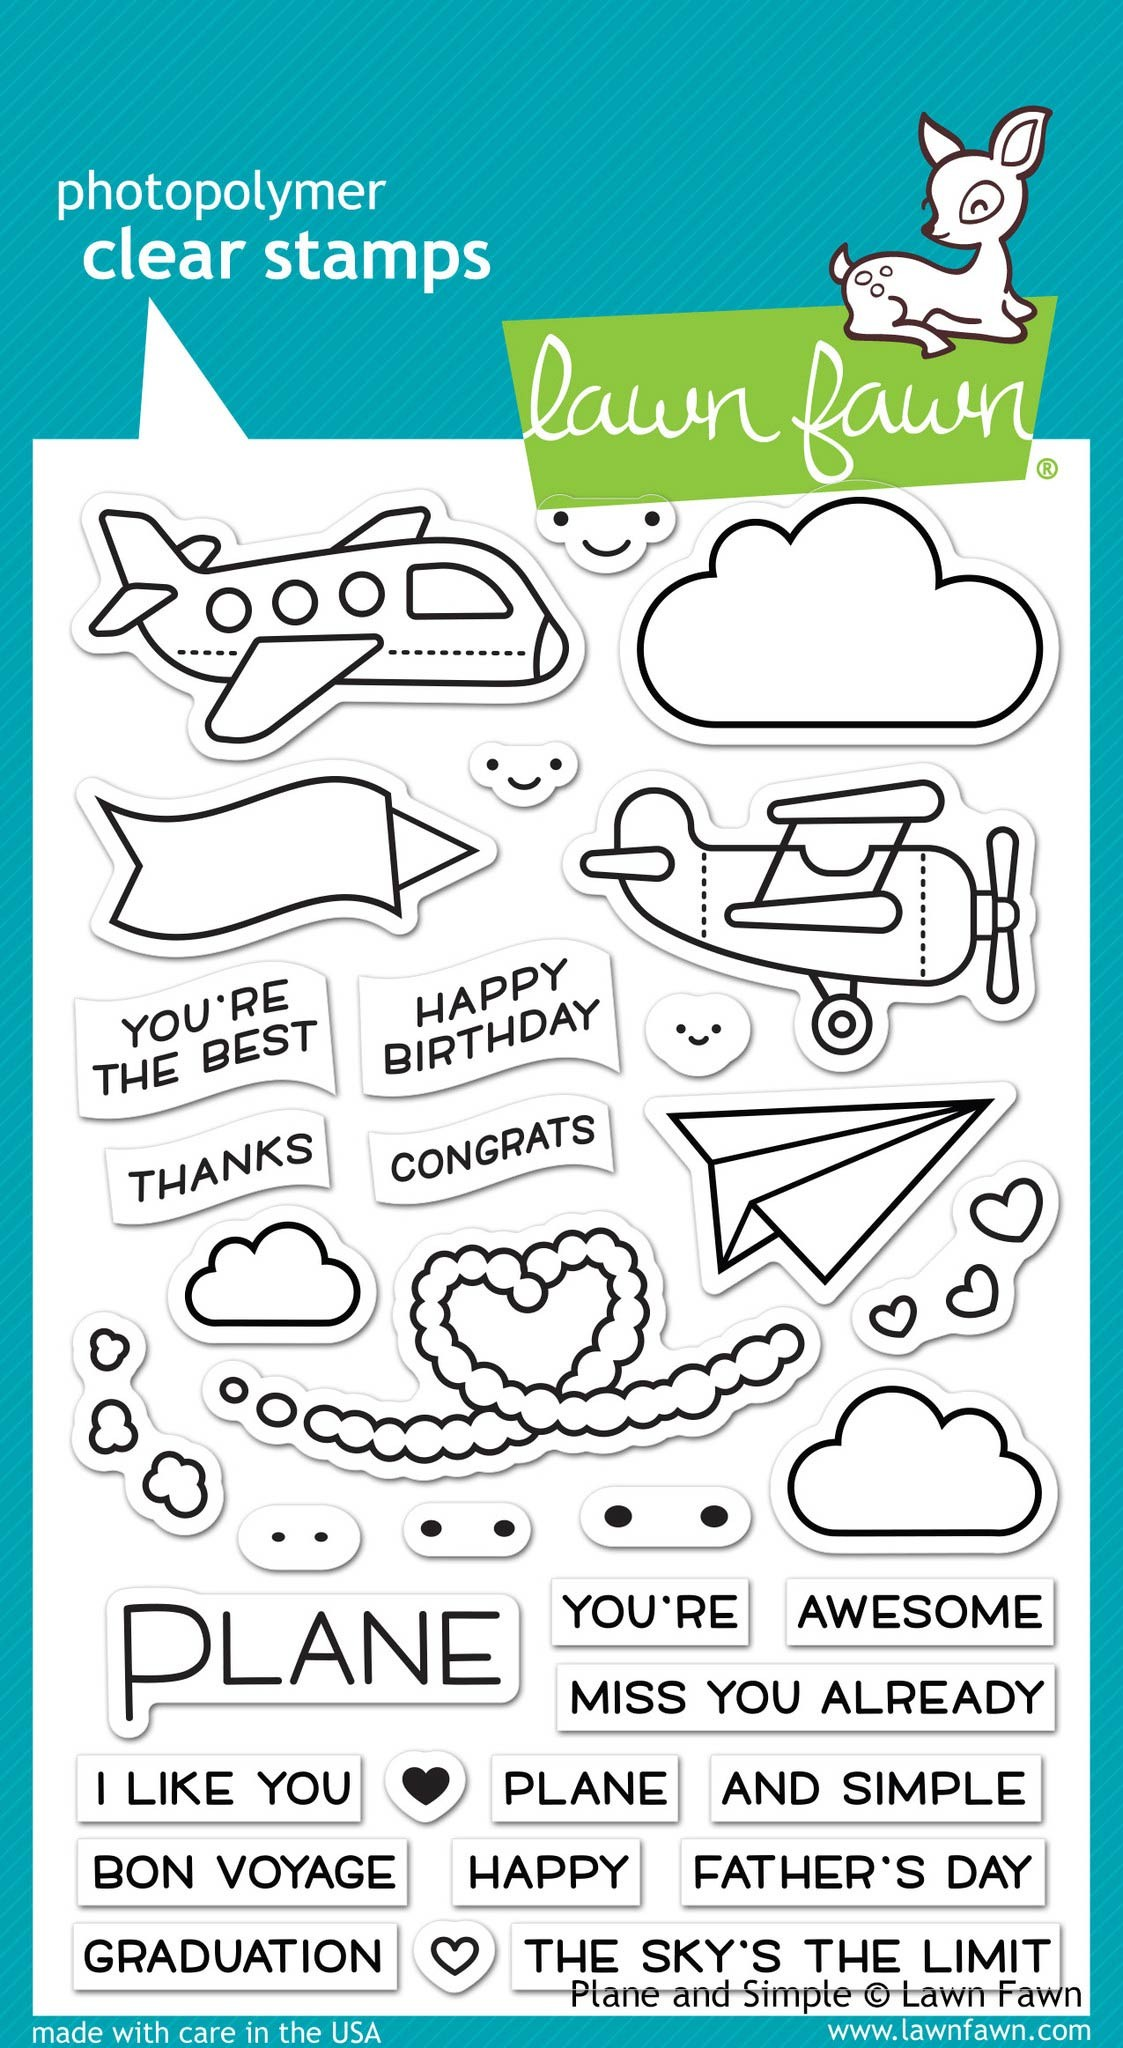 Lawn Fawn Plane and Simple Clear Stamp Set